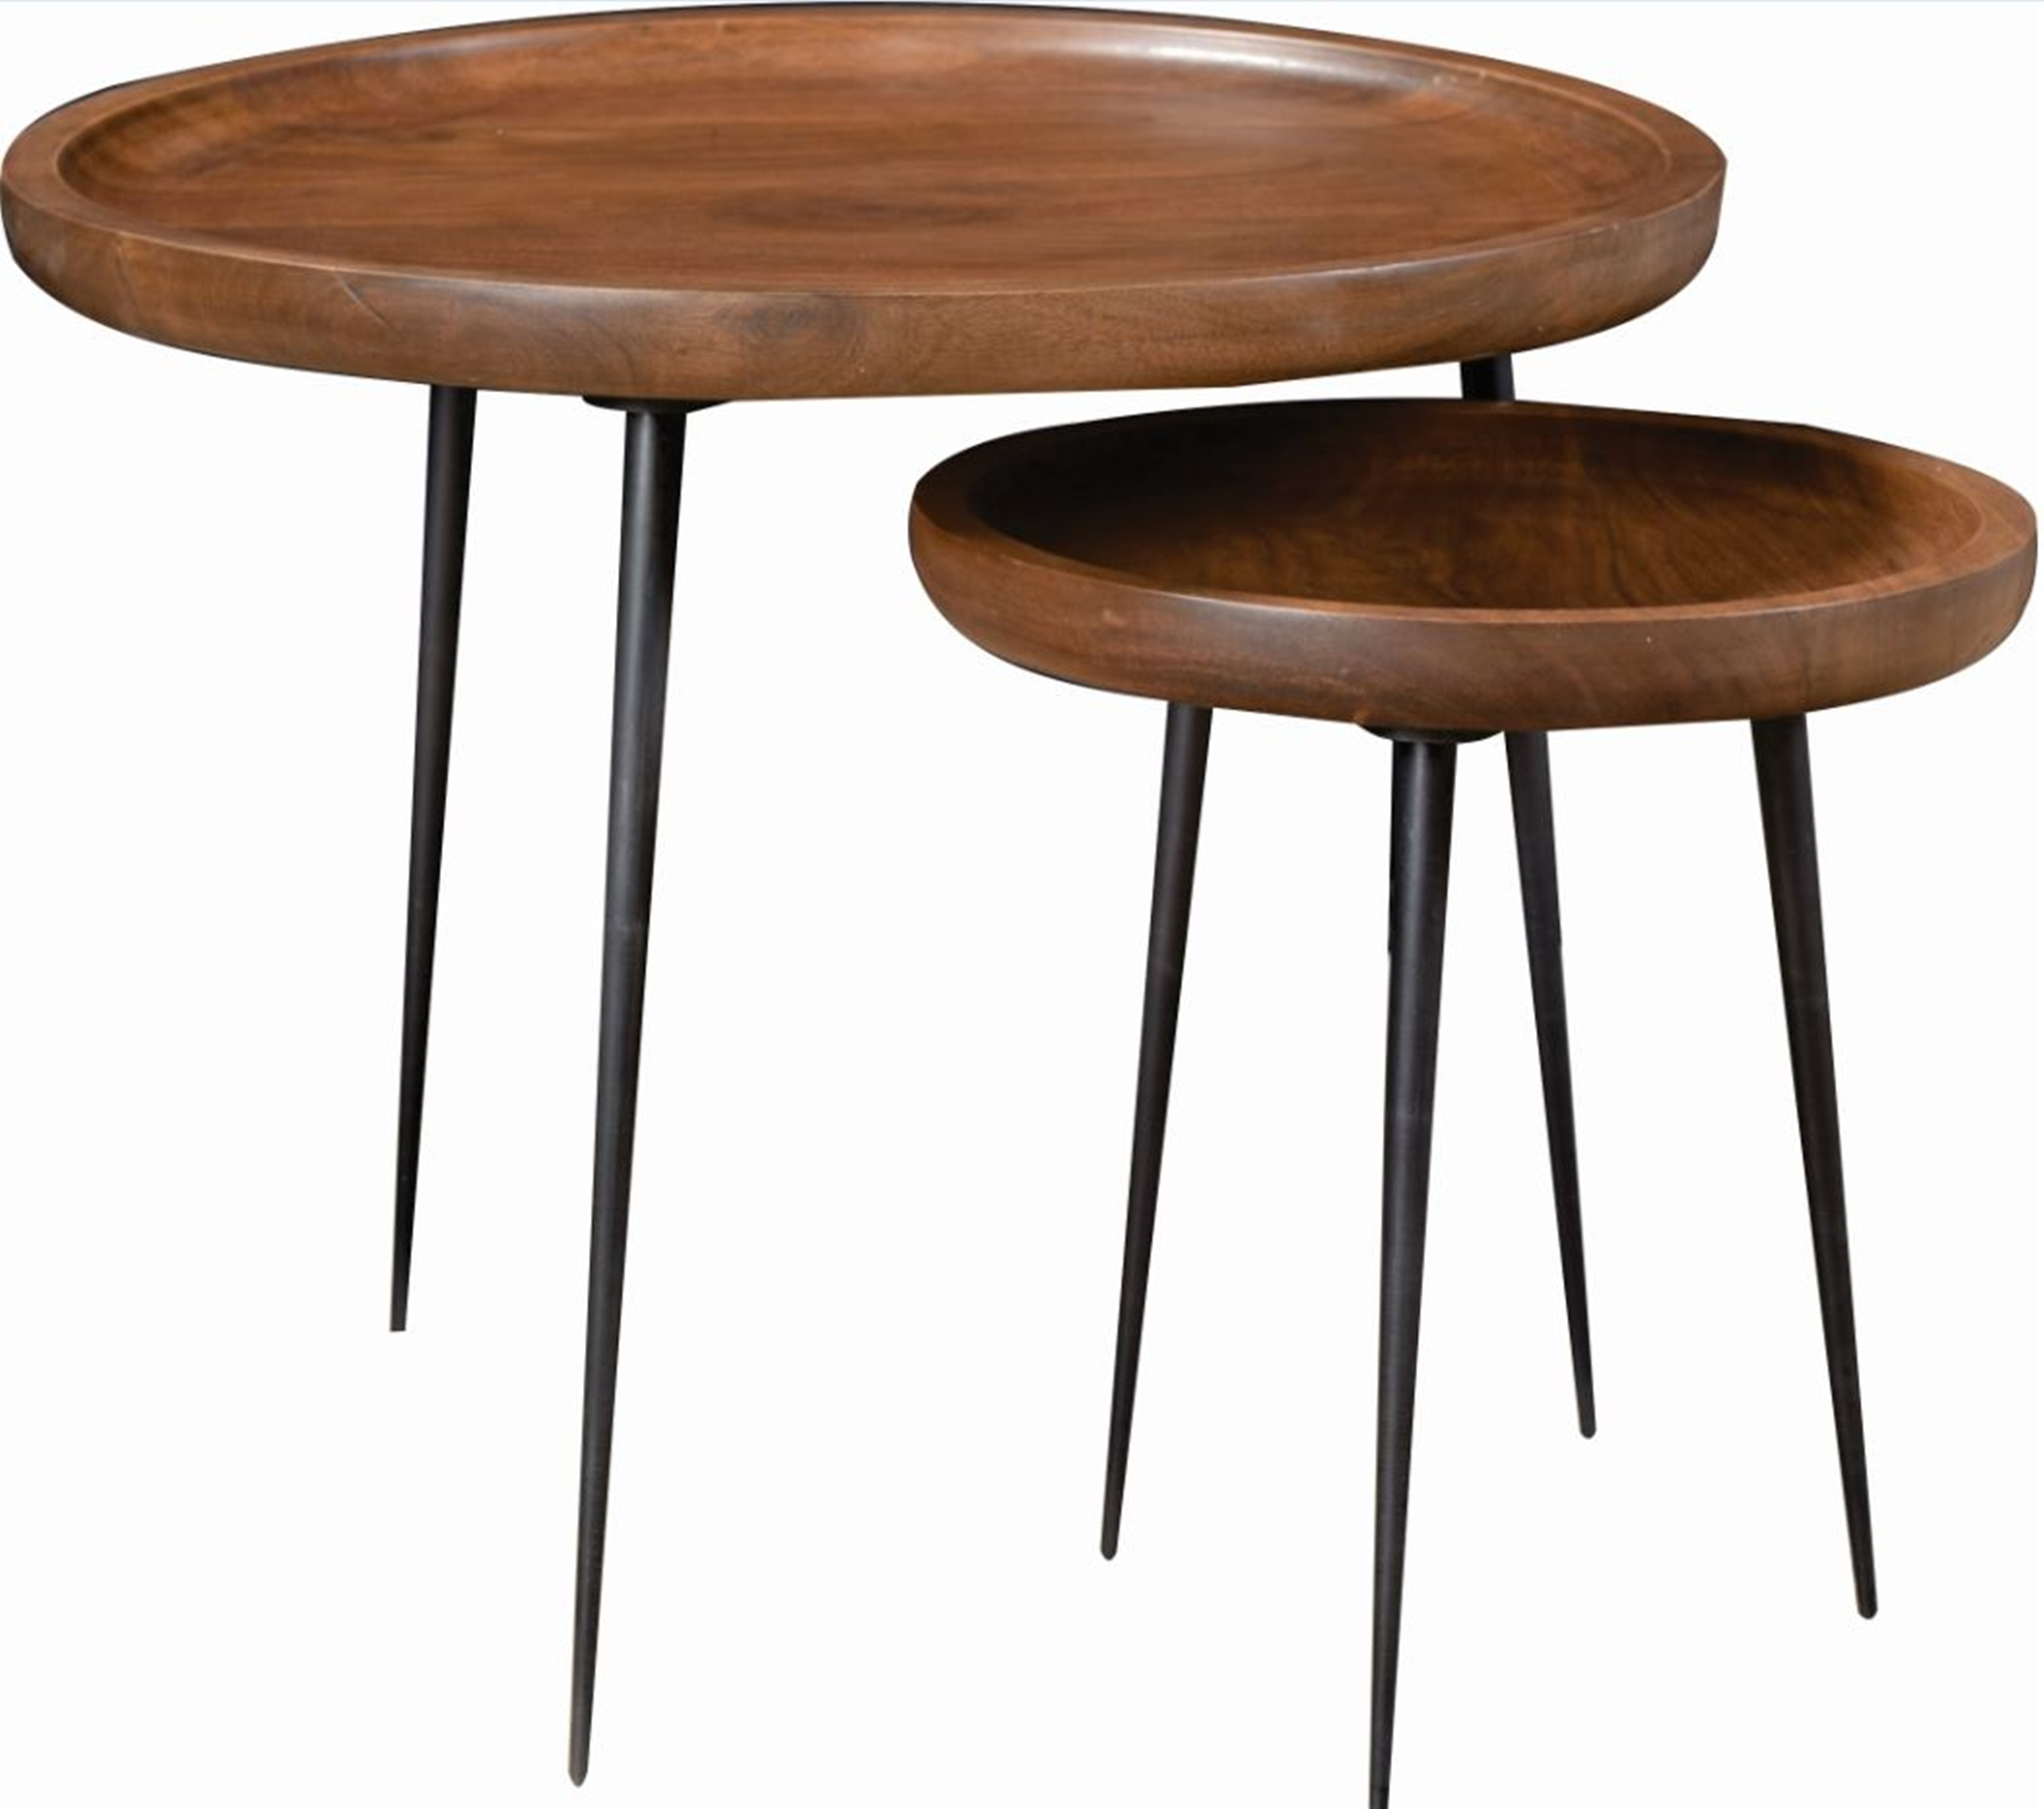 931170 - Nesting Table